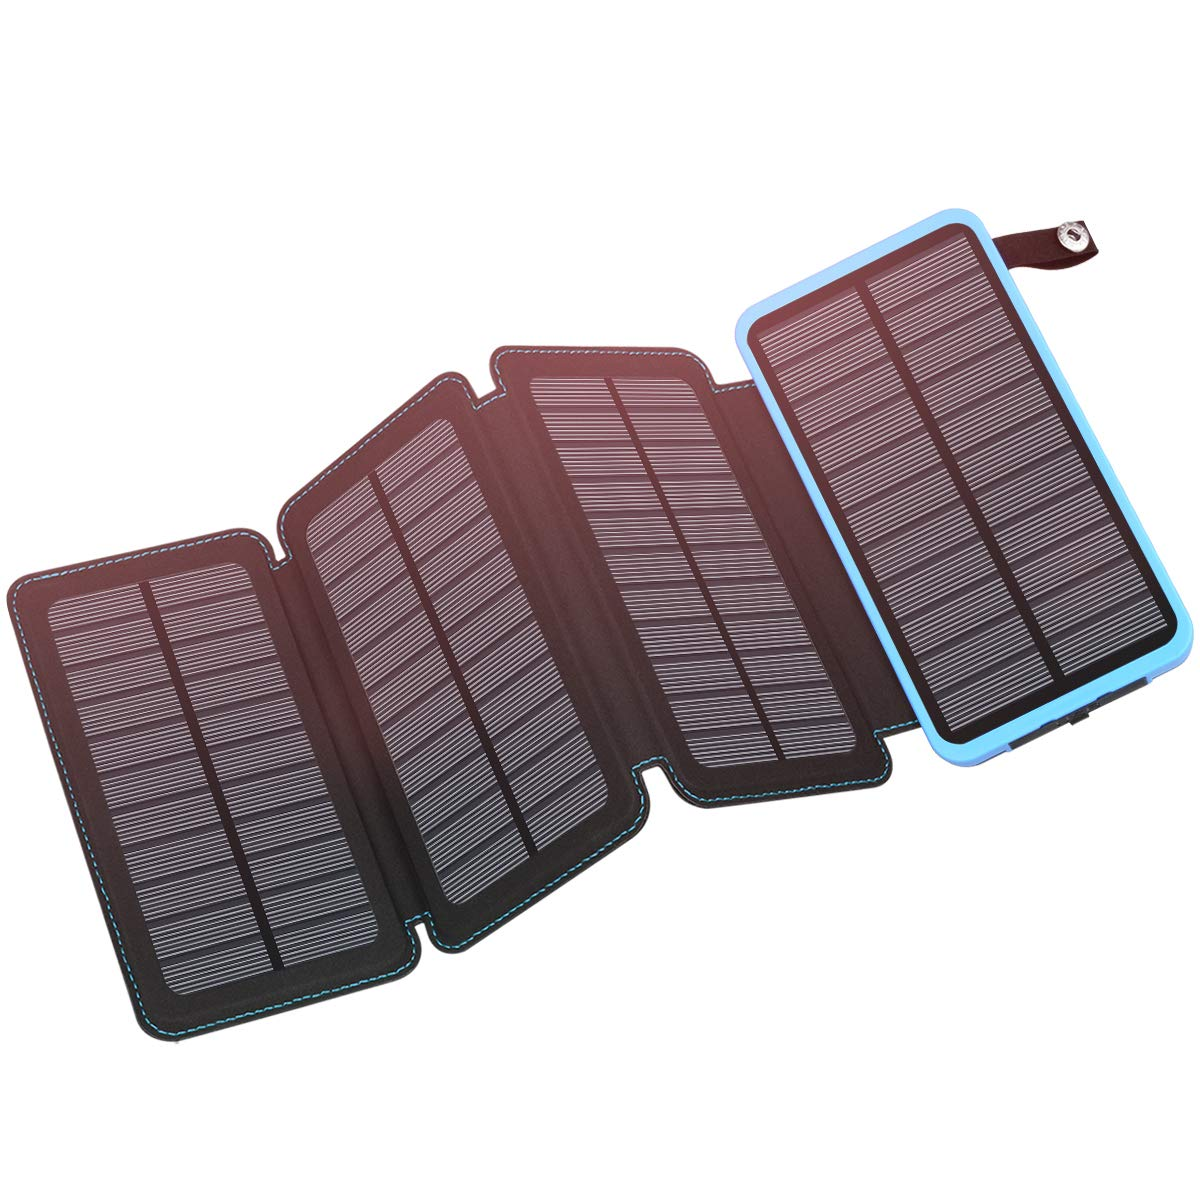 Solar Charger 25000mAh, FEELLE Portable Solar Power Bank Dual USB Ports Waterproof External Battery with LED Flashlight for Smartphones, Tablets, Kindle